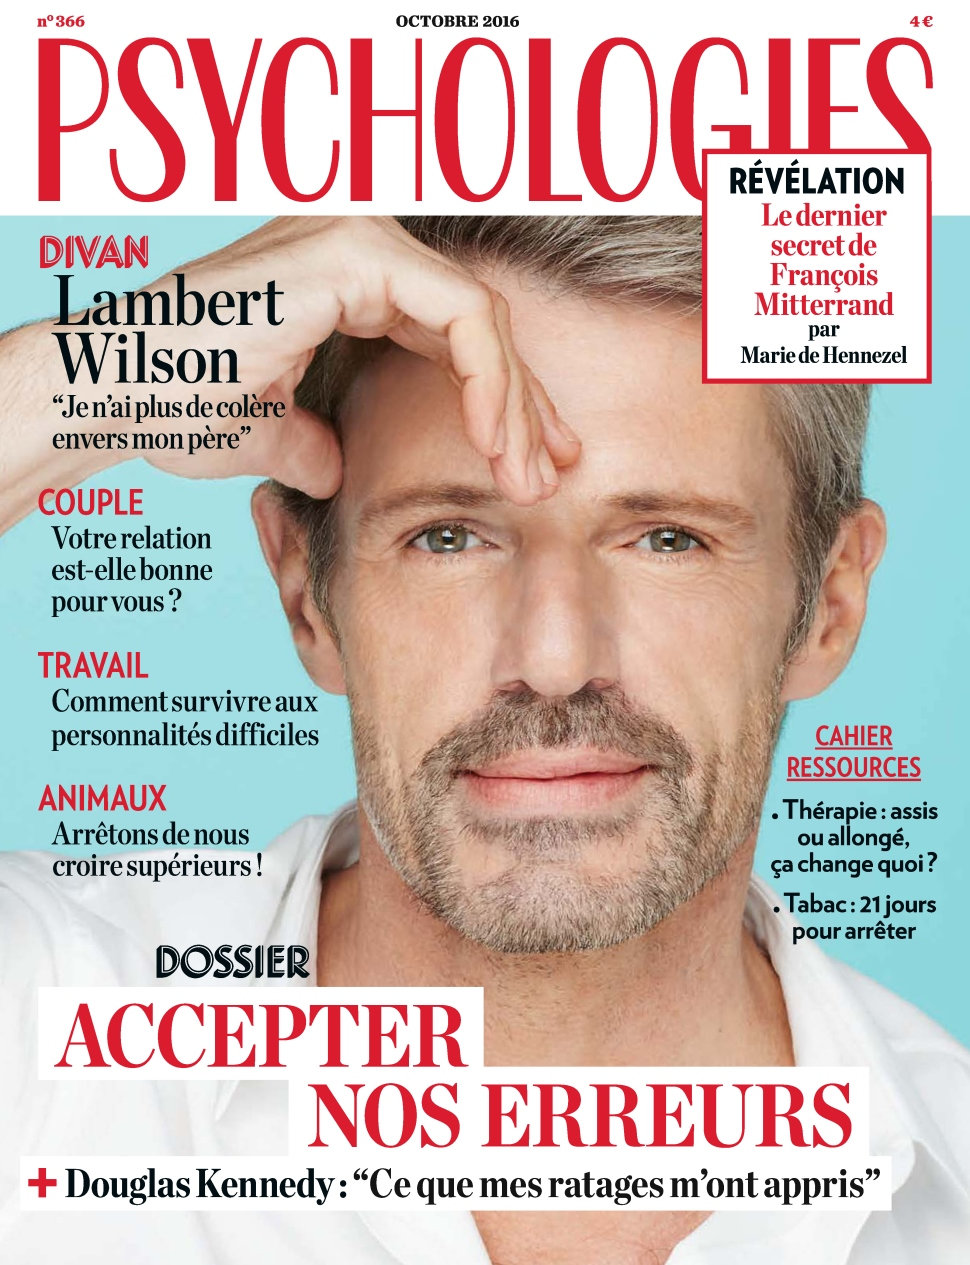 Psychologies magazine N°366 - Octobre 2016